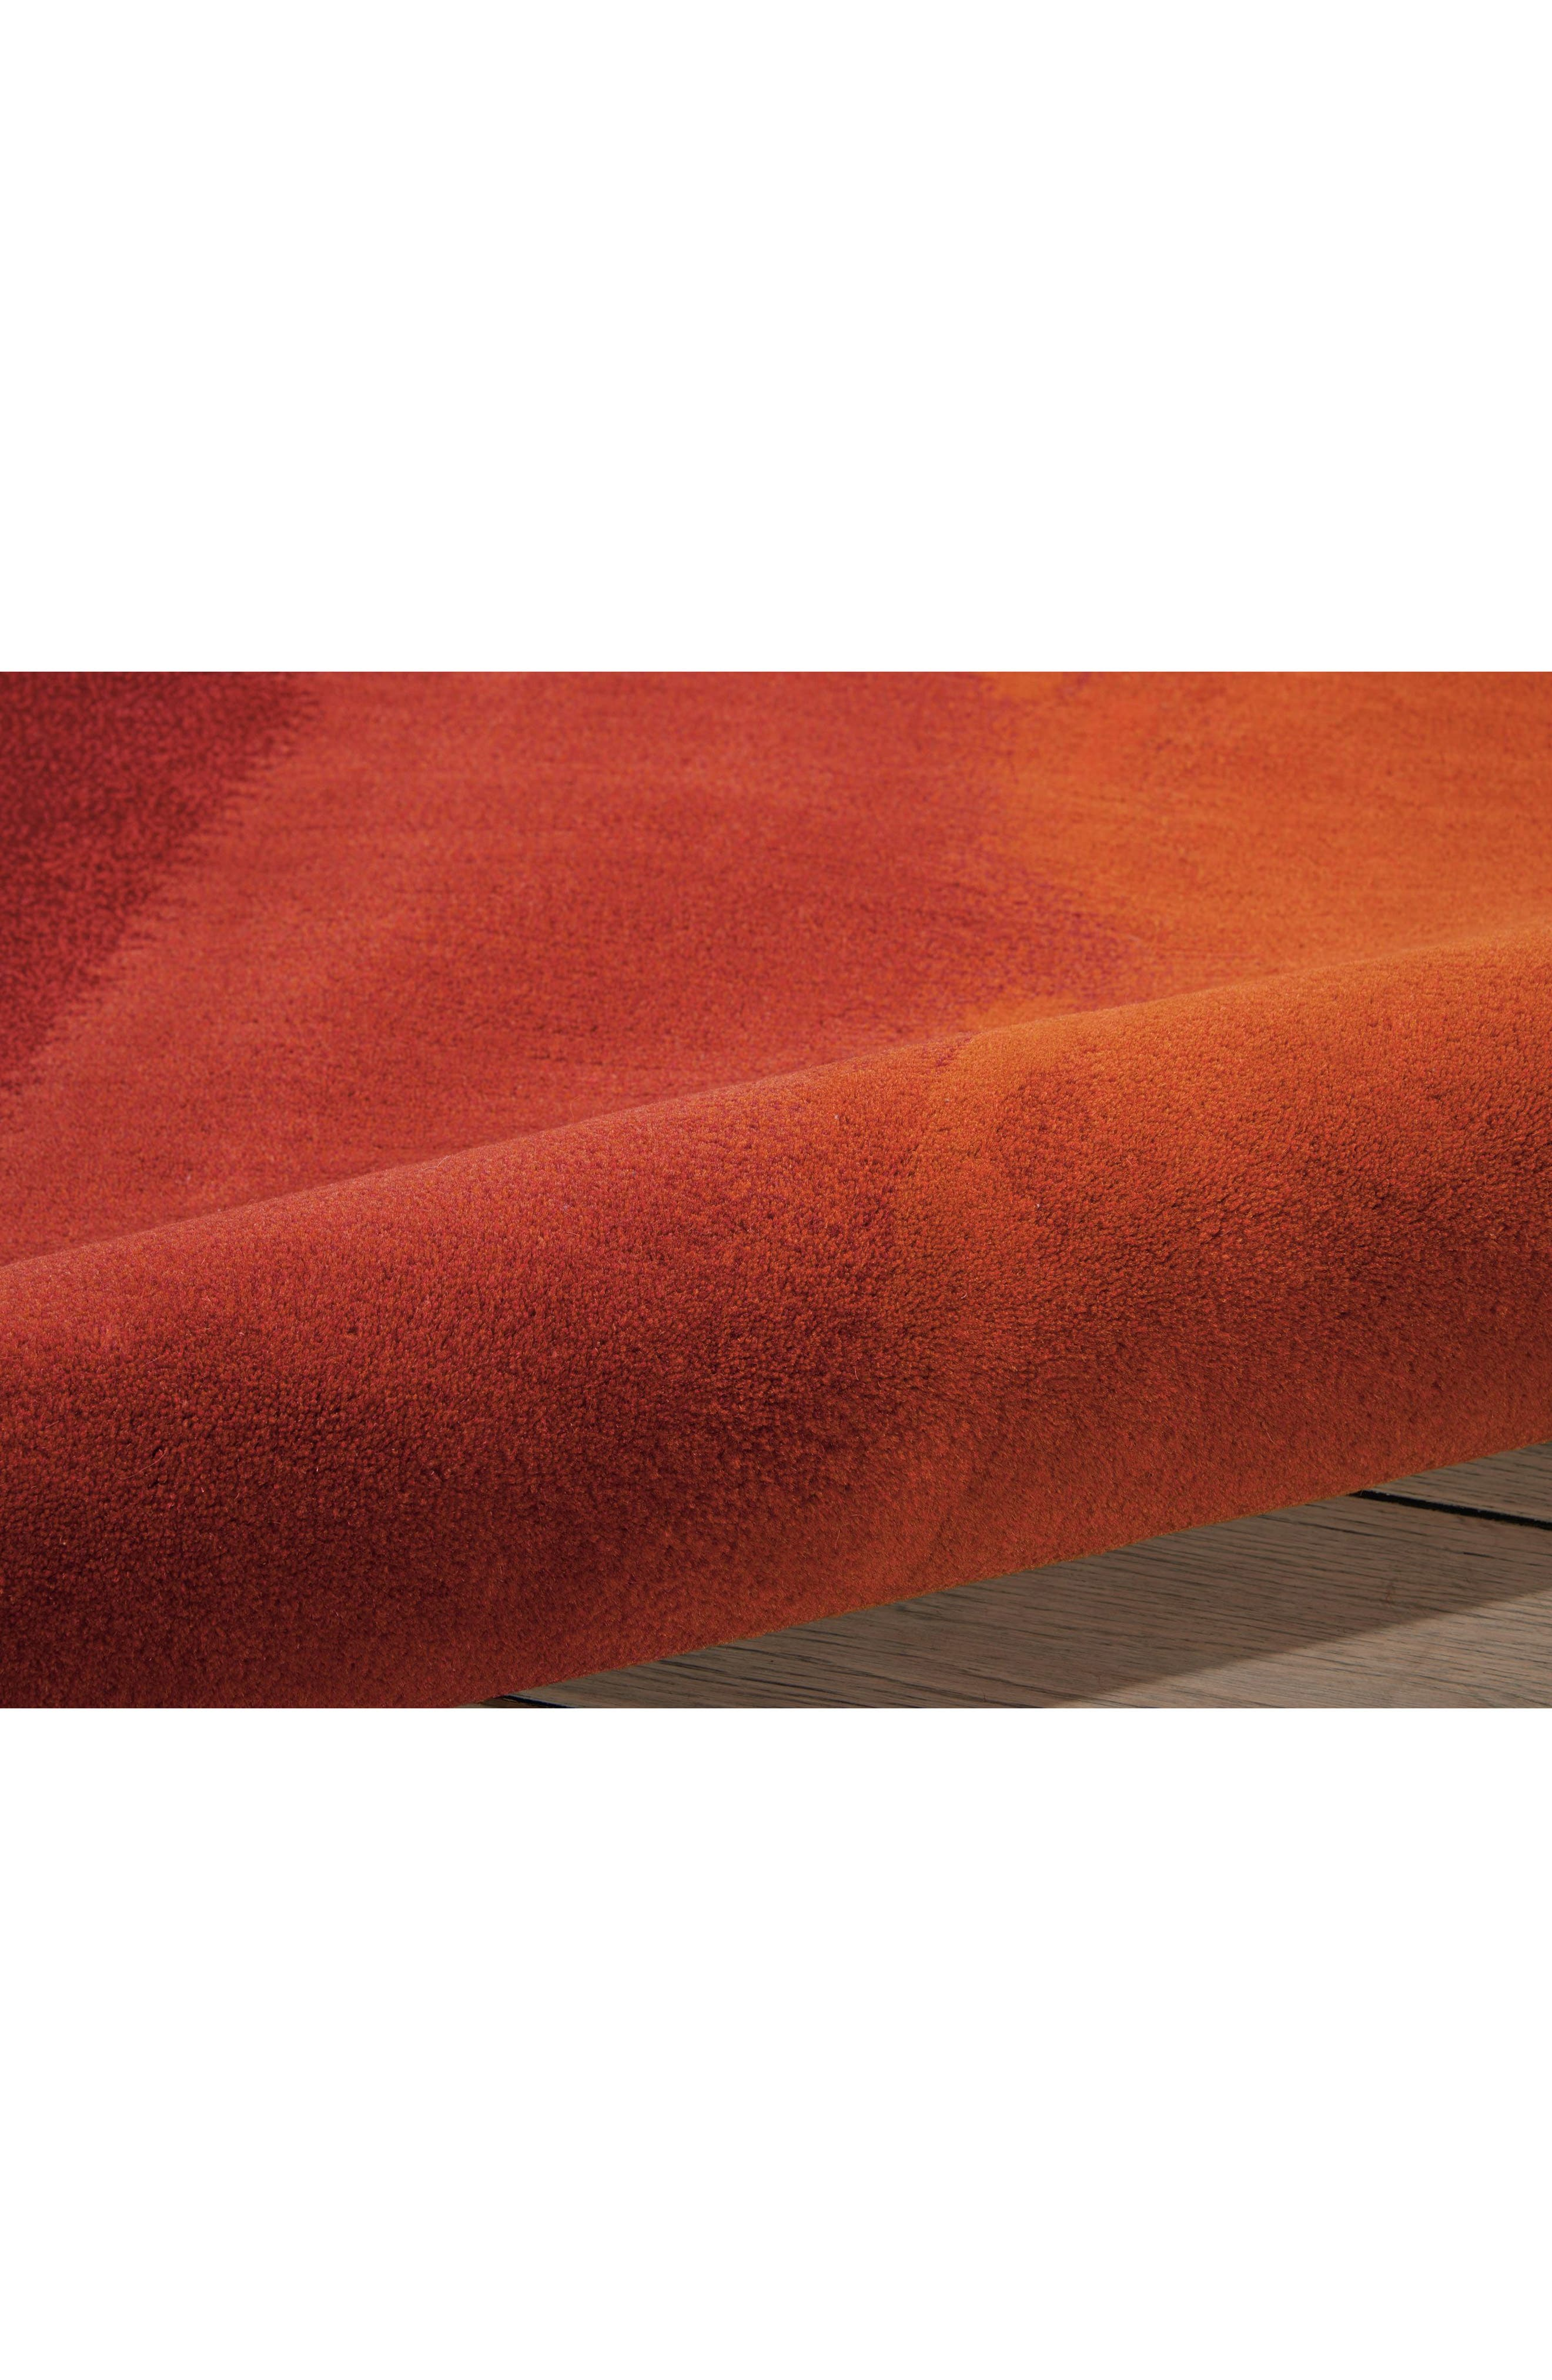 Luster Wash Wool Area Rug,                             Alternate thumbnail 30, color,